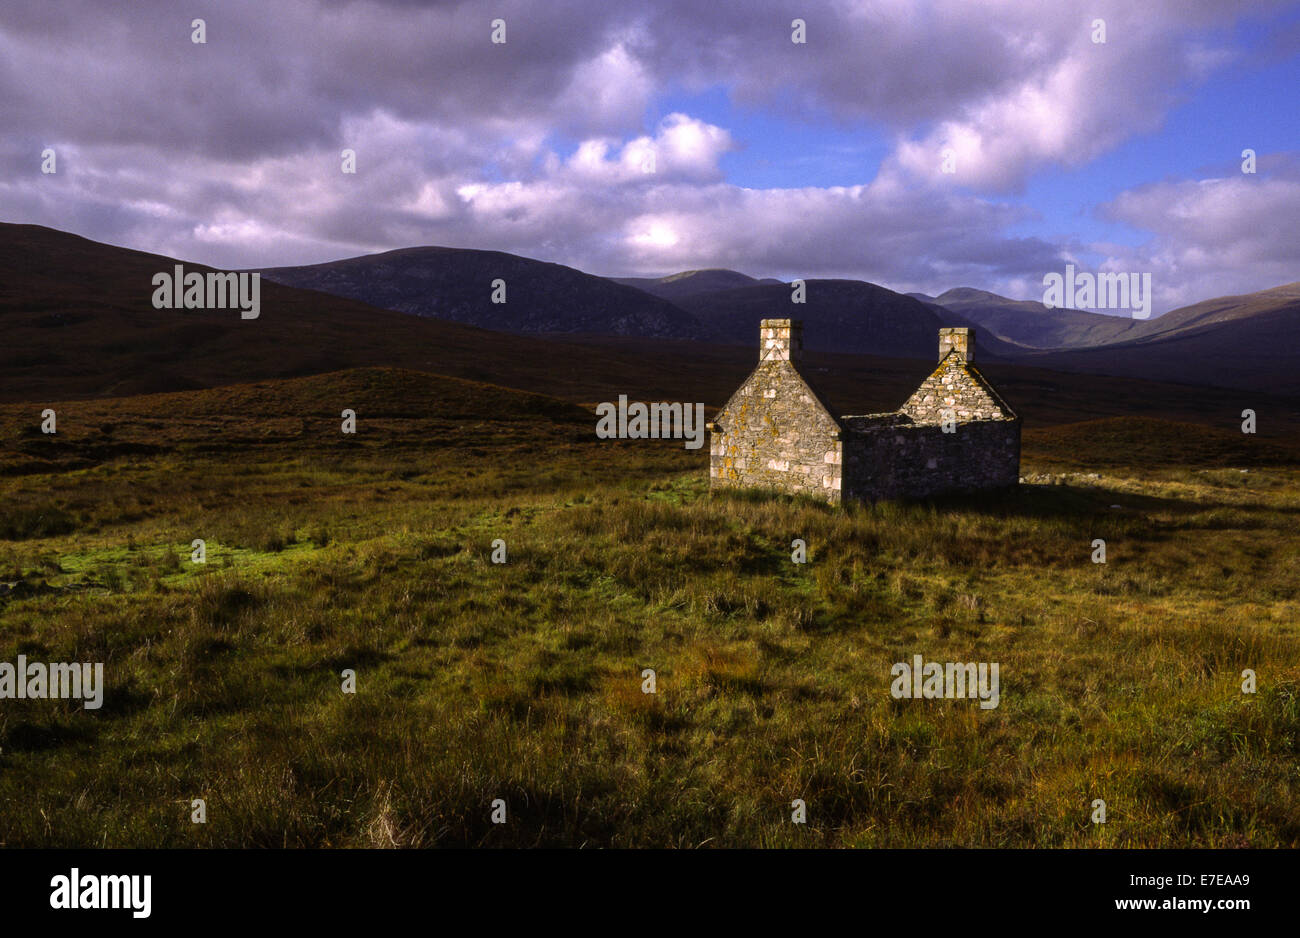 DESERTED CROFT HOUSE IN THE REMOTE HILLS OF SUTHERLAND SCOTLAND - Stock Image